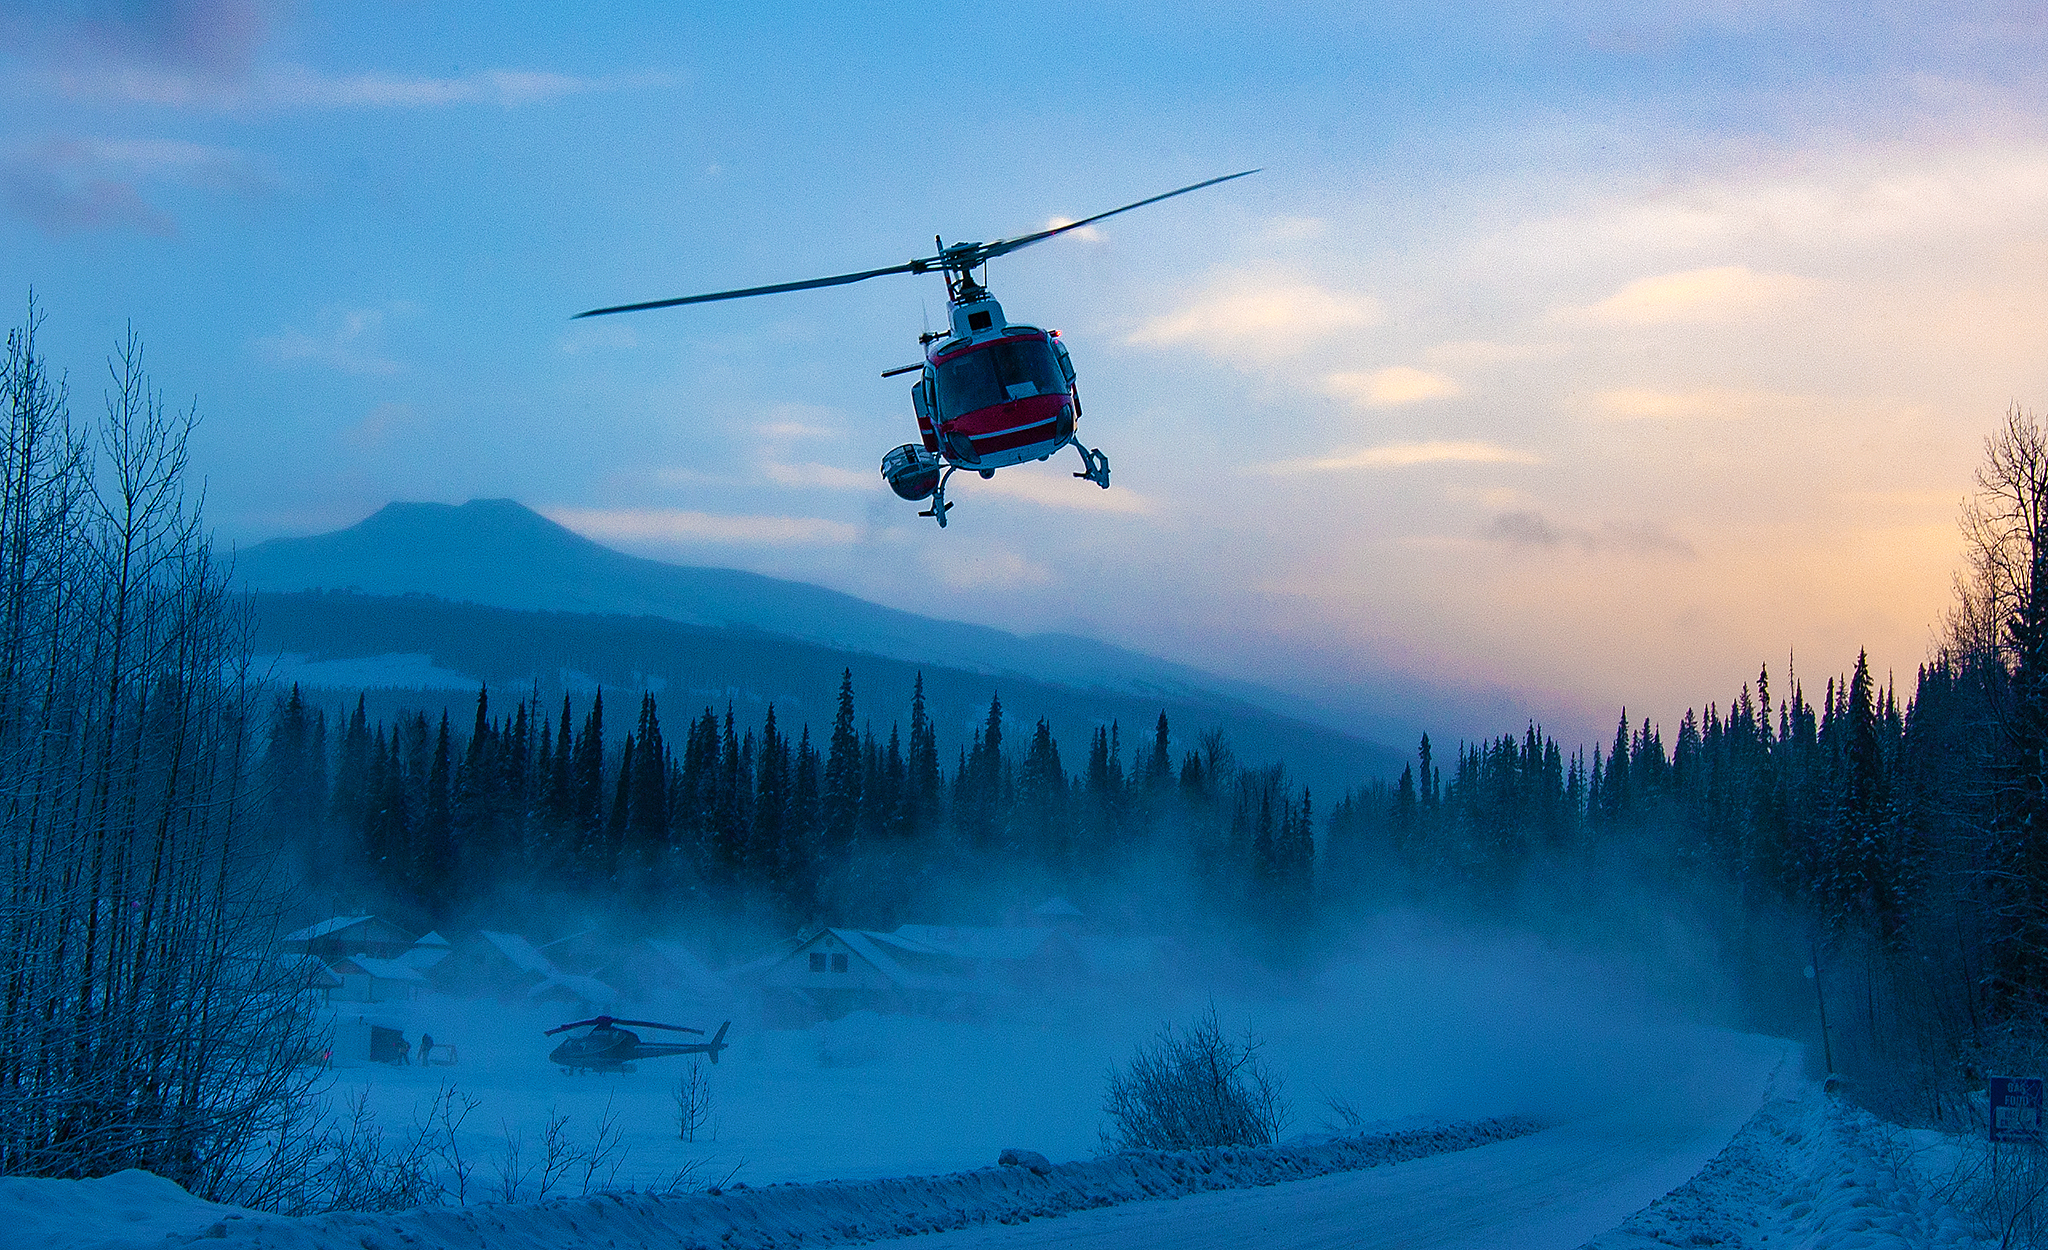 2003 / Last Frontier Heliskiing - liftoff for another powderday